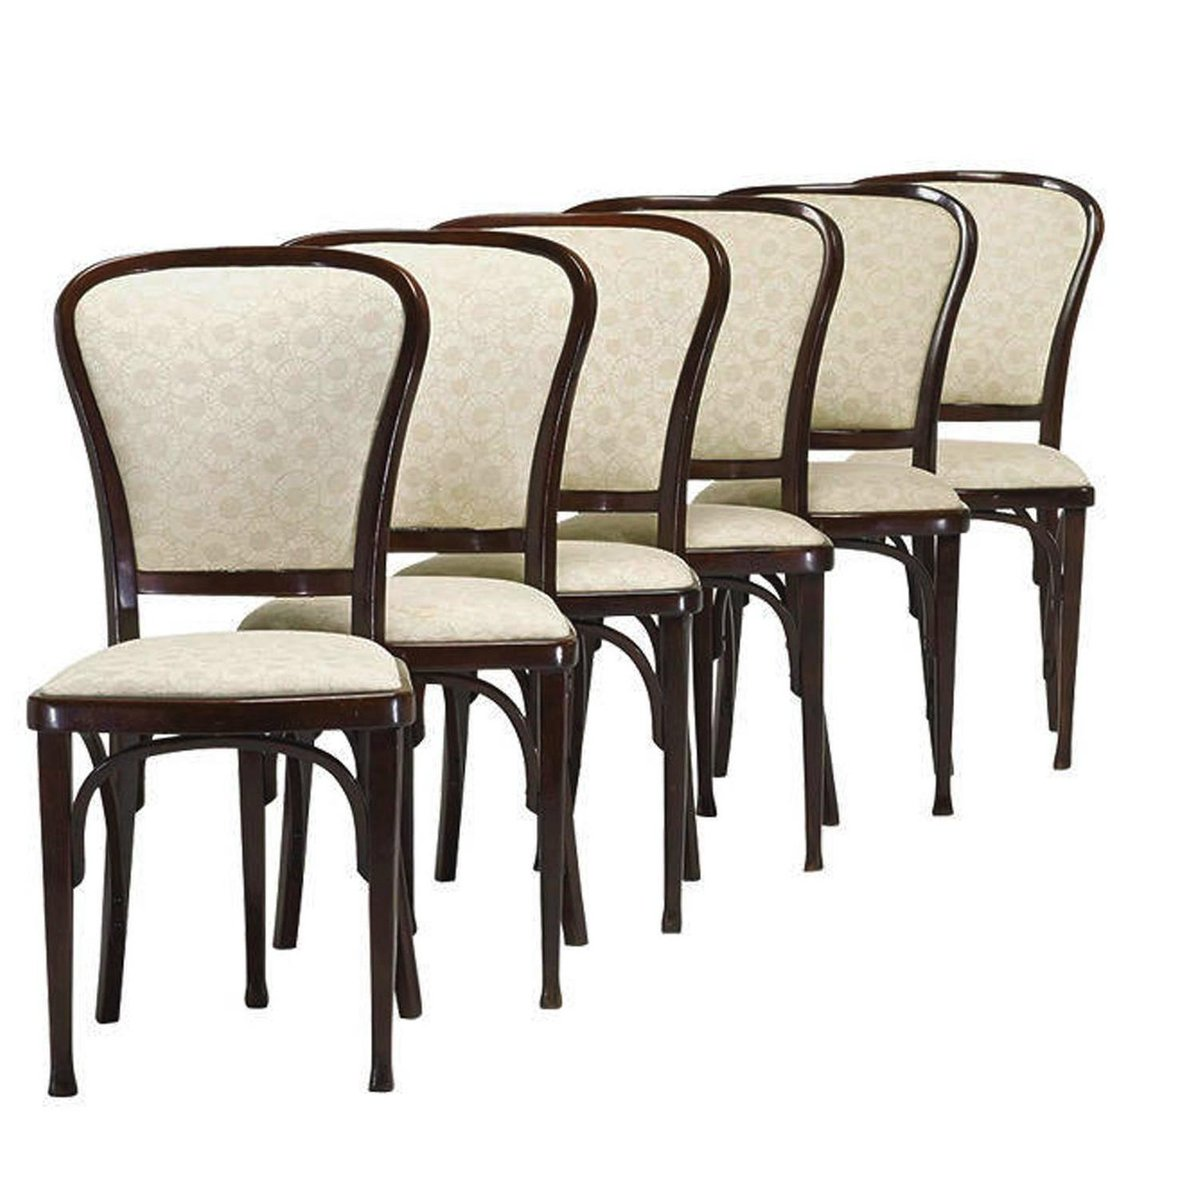 Dining Chairs by Gustav Siegel for Thonet 1910 Set of 6 for sale – Thonet Dining Chair